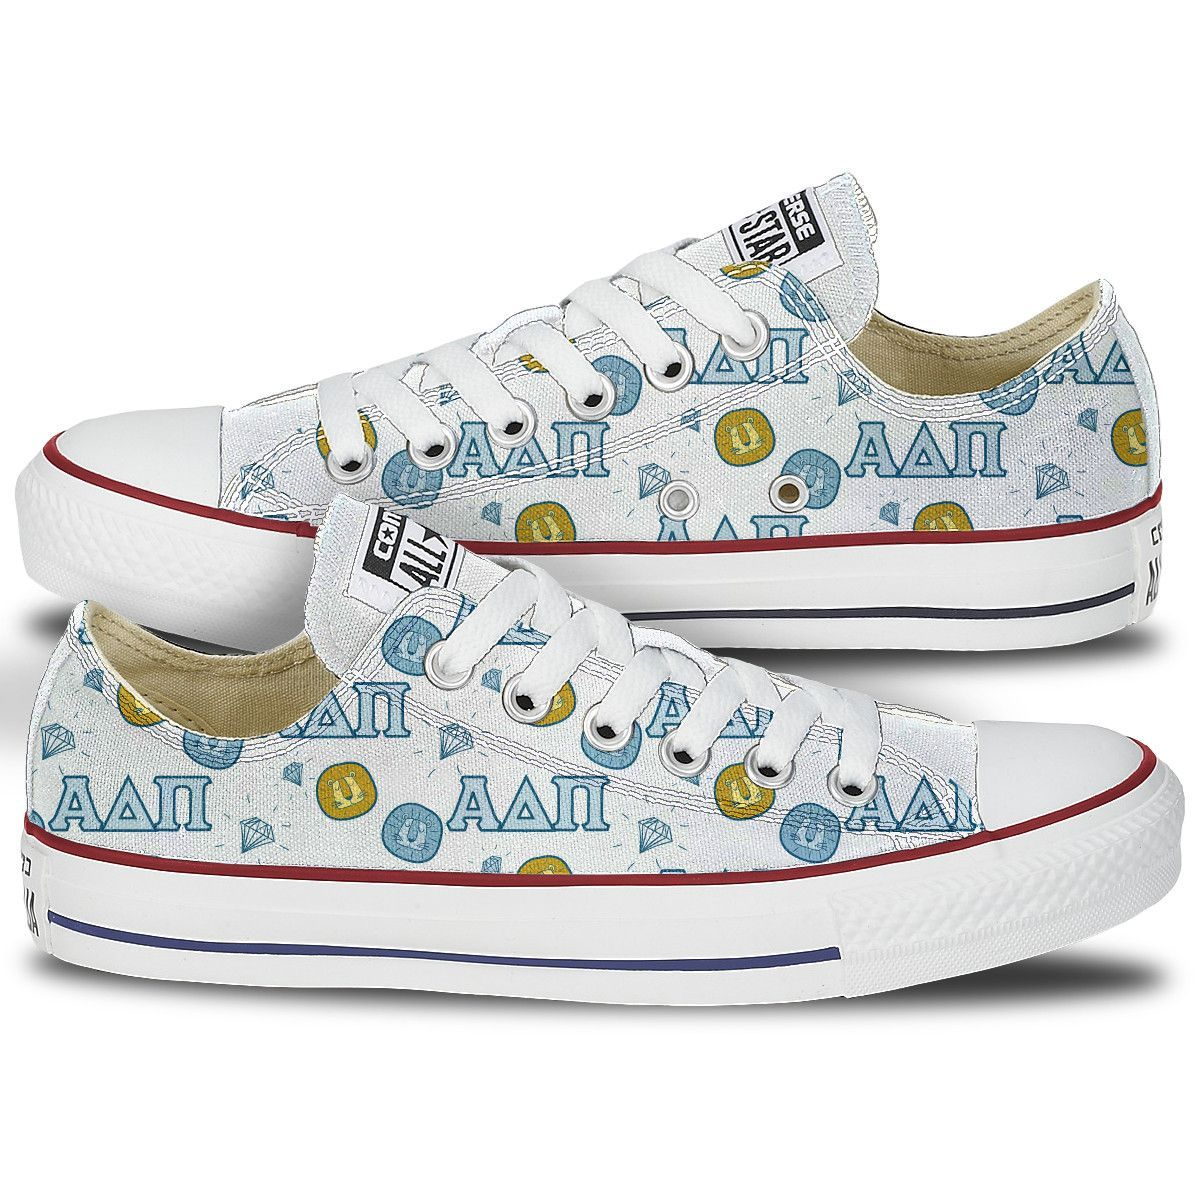 Converse Chuck Taylor All Star lion pattern lows